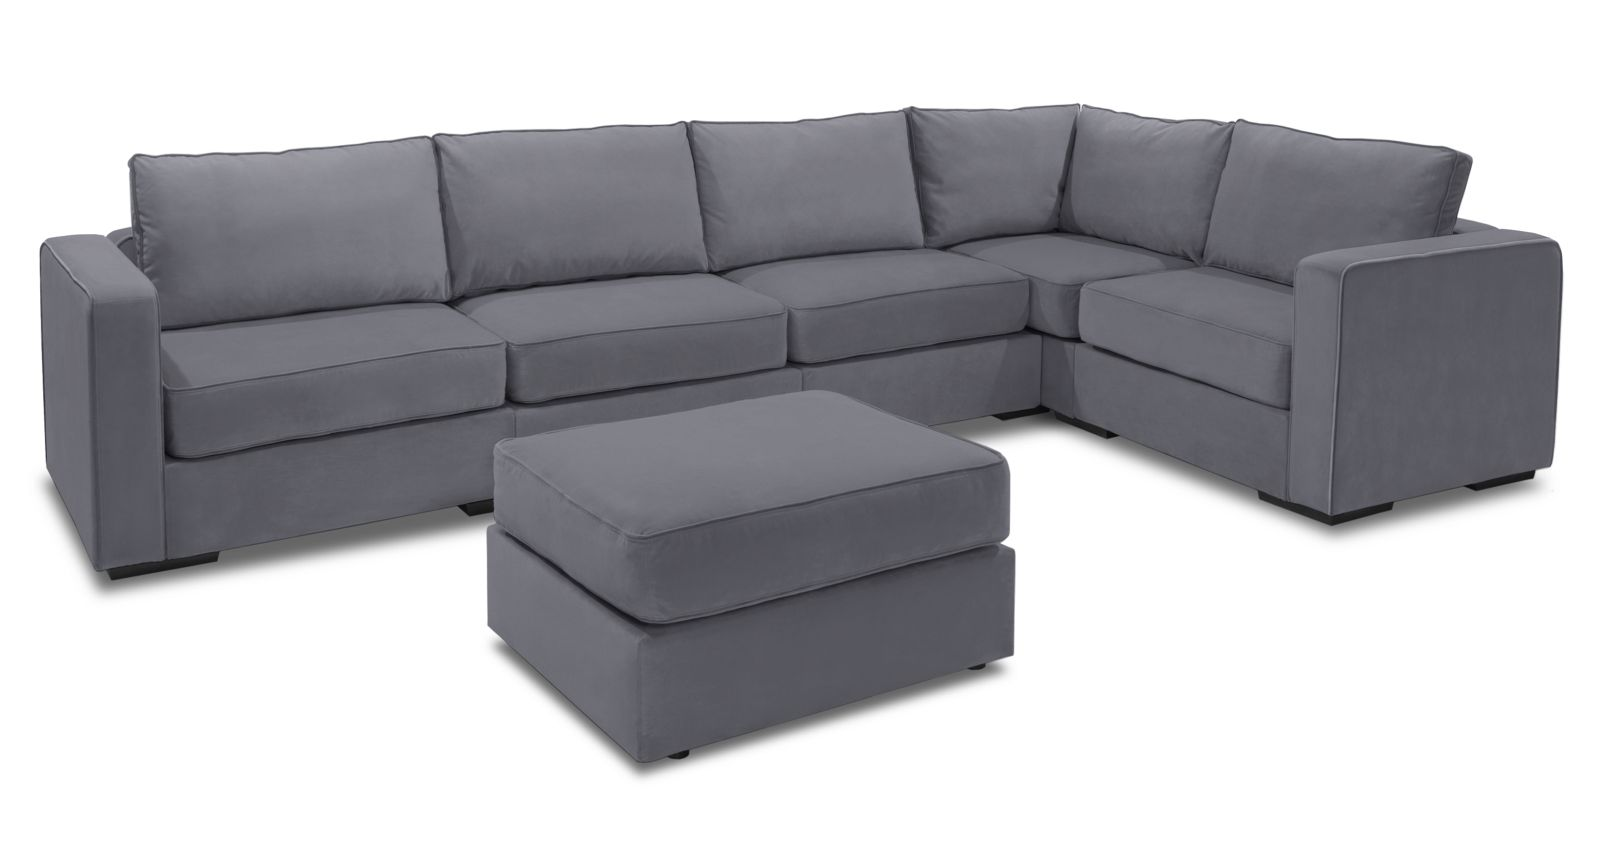 6 Sofa 6 Couches For Small Apartments That Will Actually